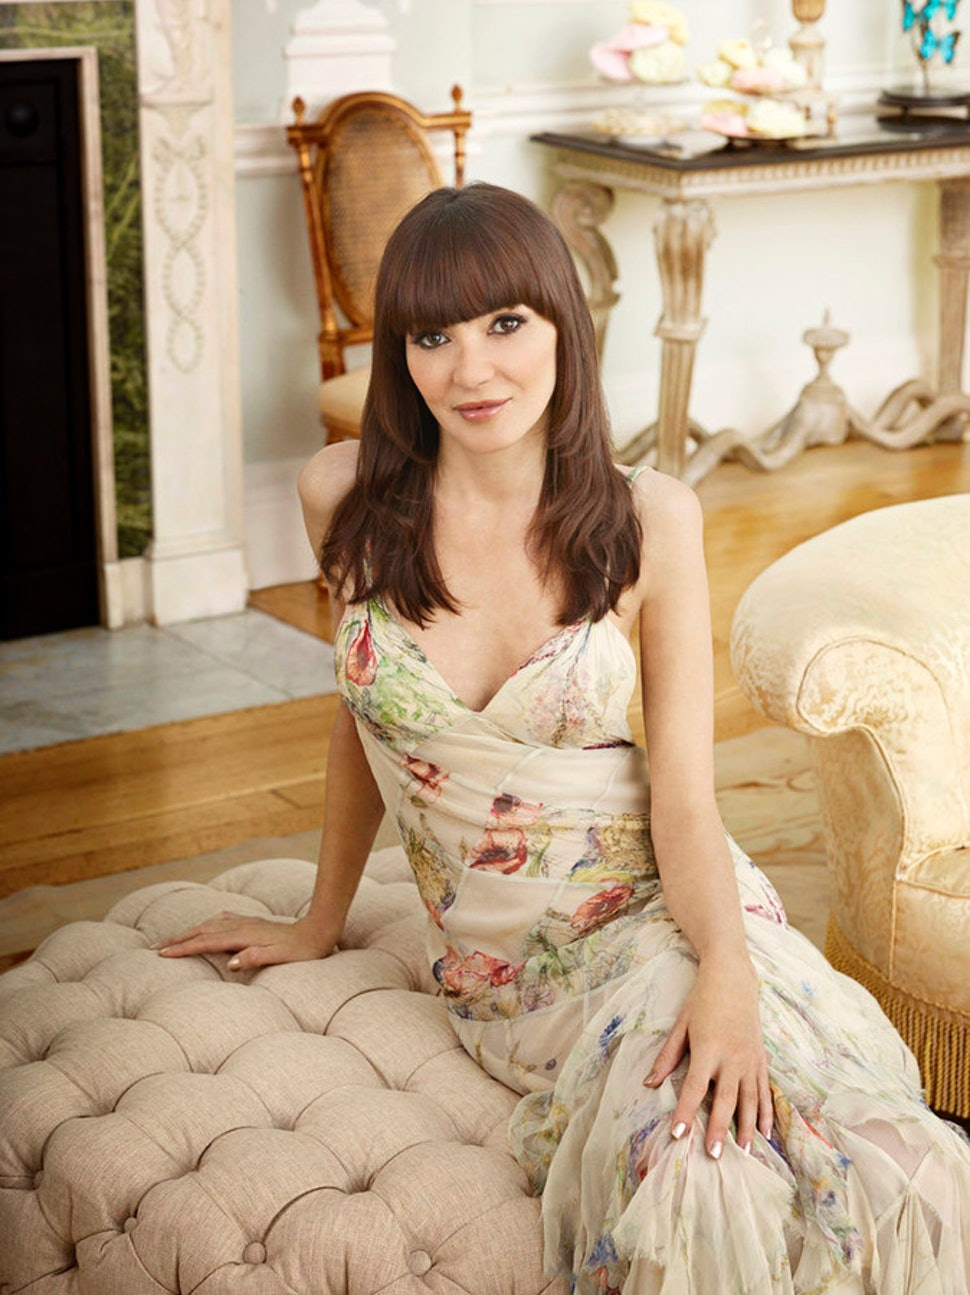 Ladies Of London Annabelle Neilson Isnt Letting Her Injury Get In Her Way